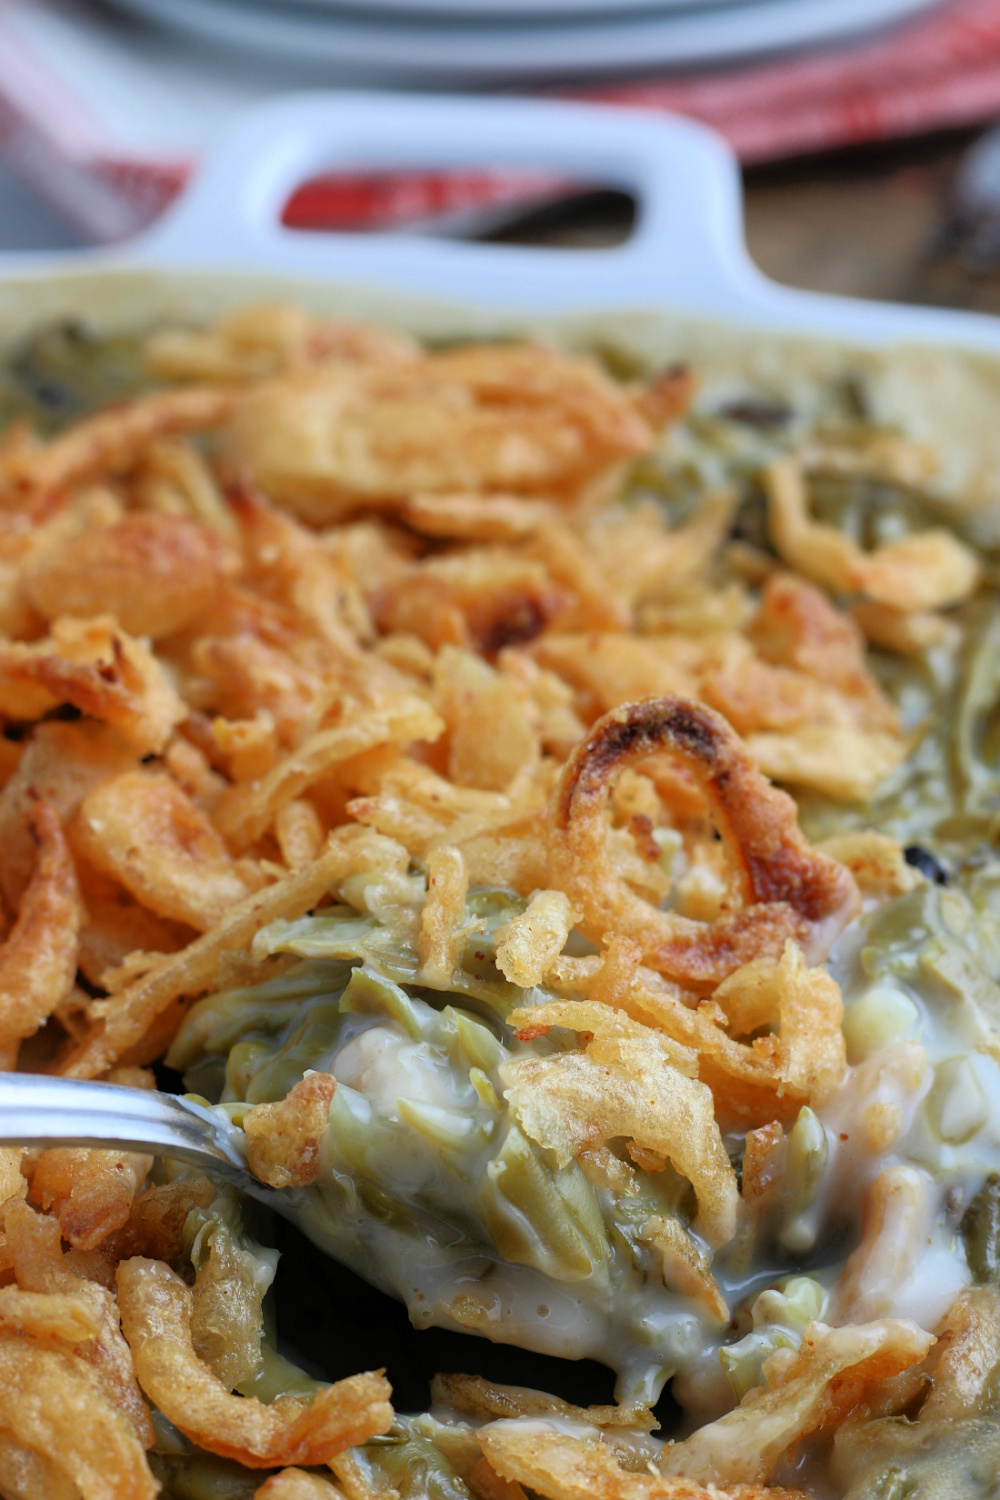 Easy Green Bean Casserole in a baking dish, with a spoon scooping out some